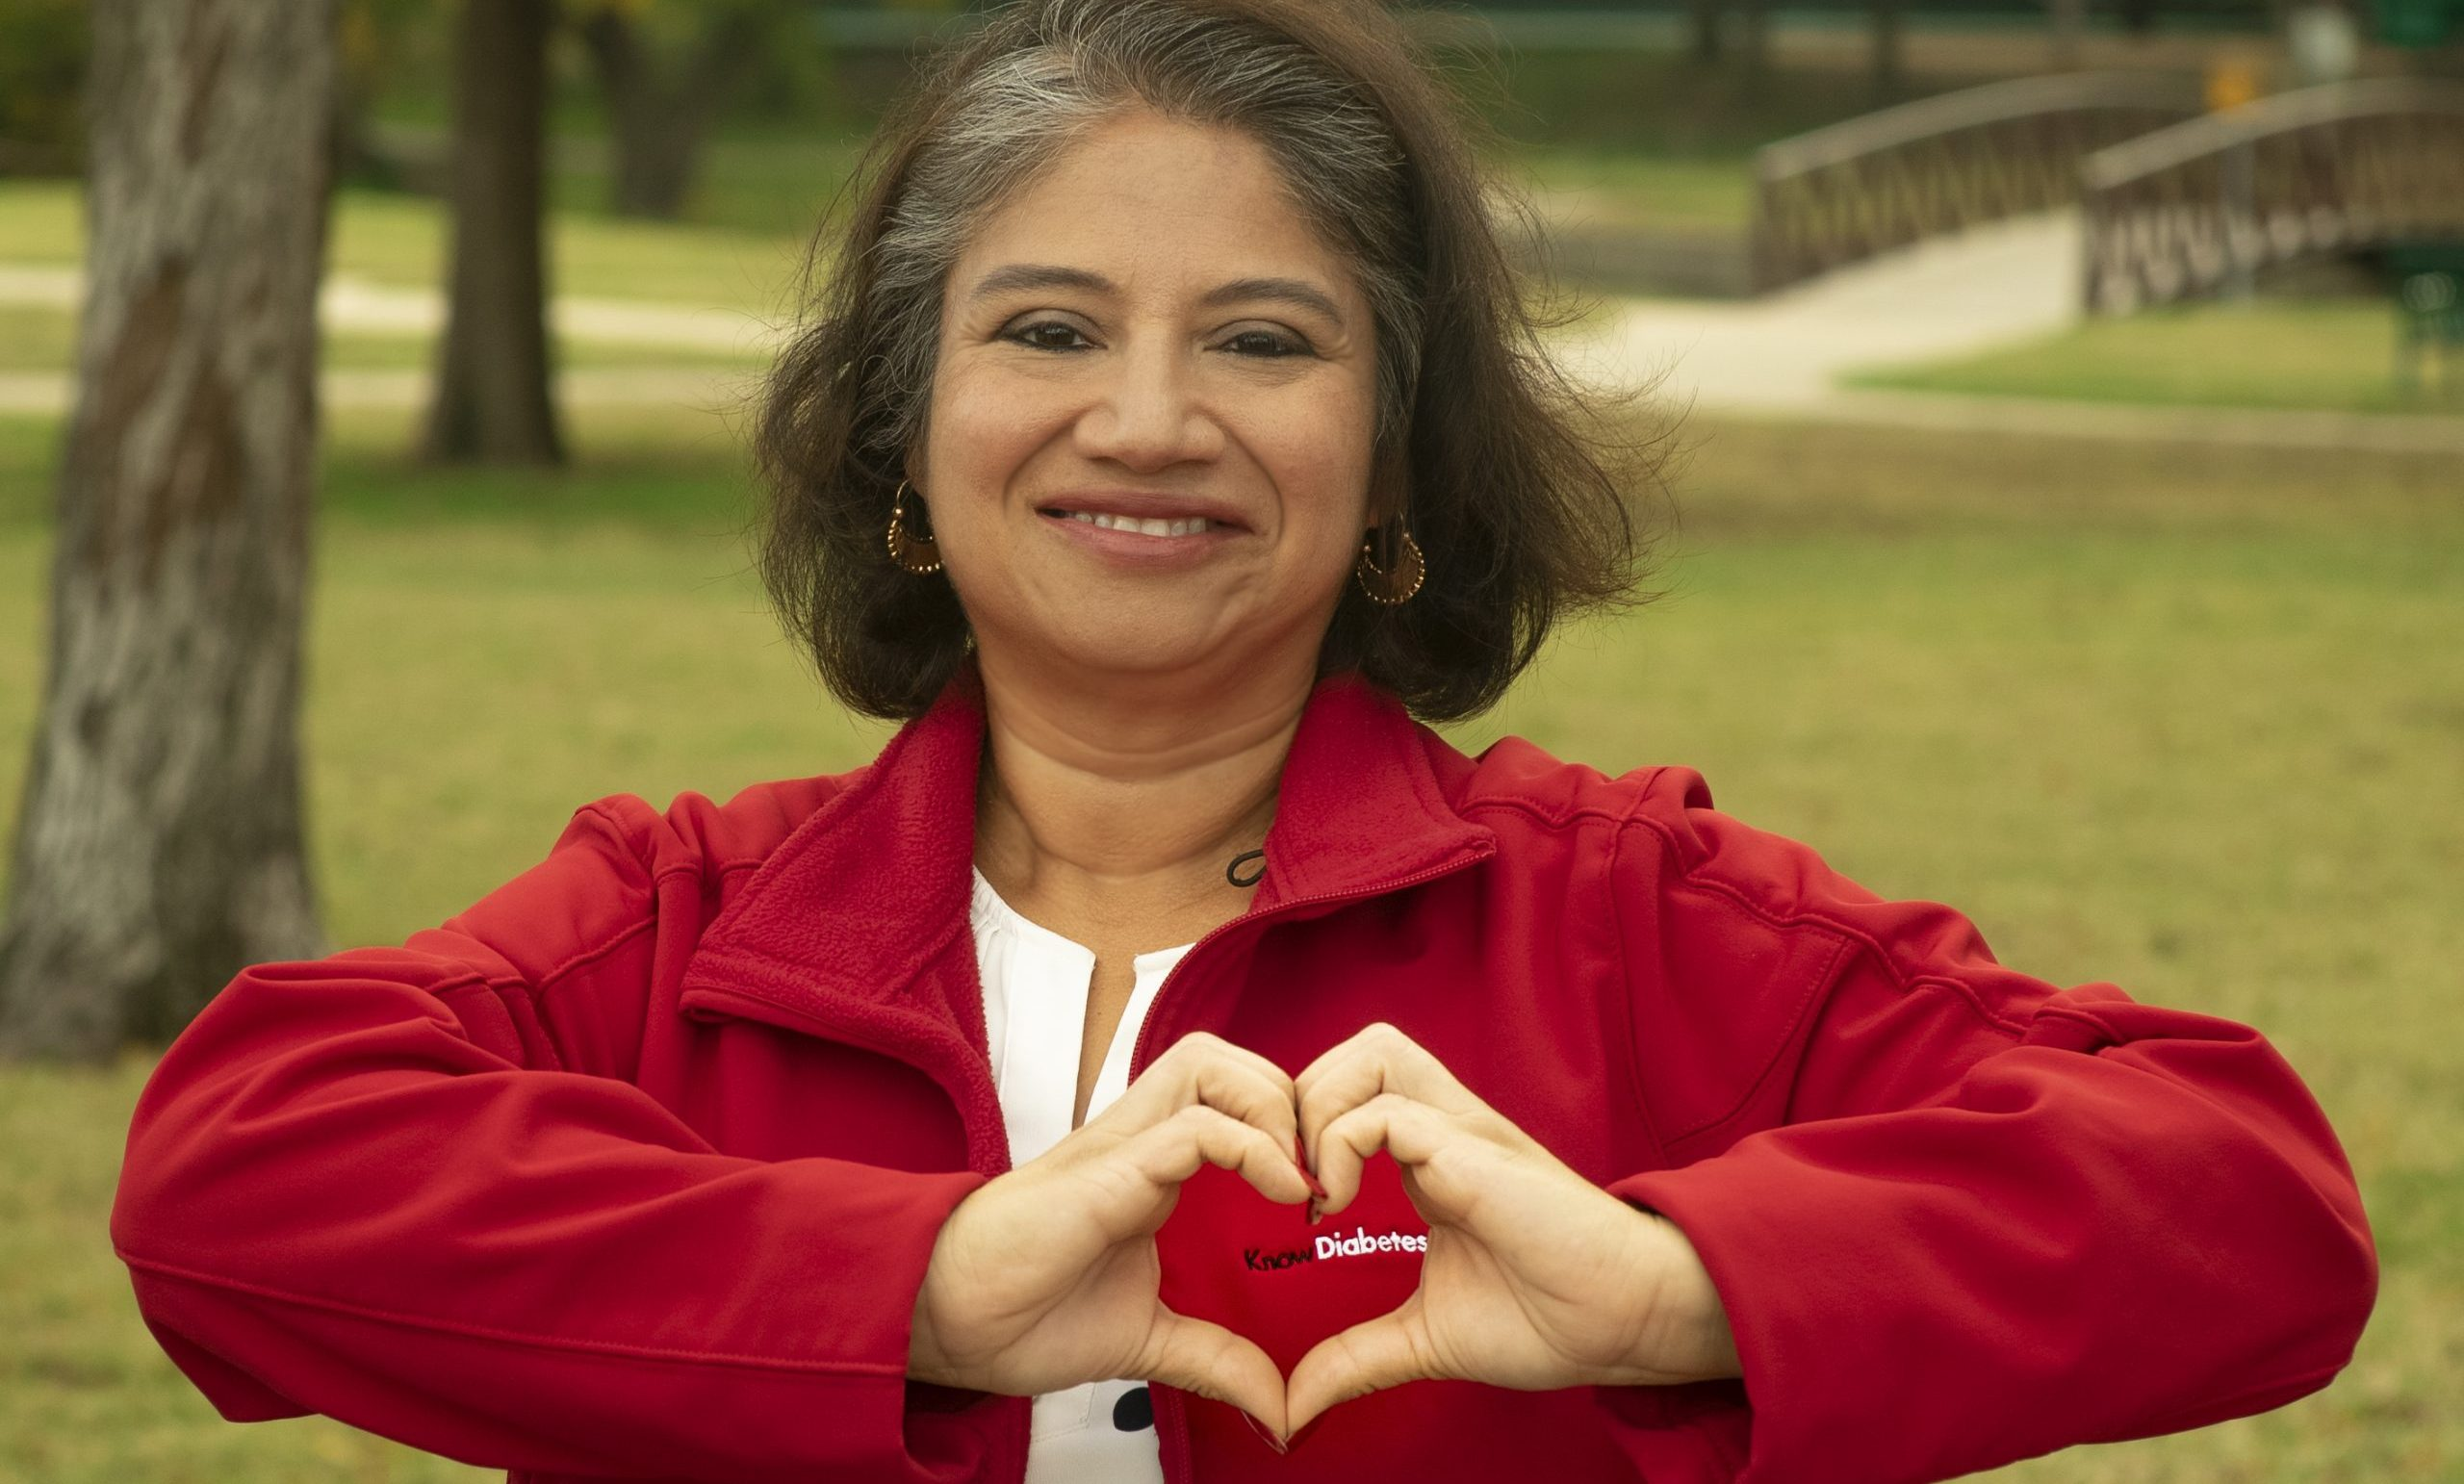 Living With Type 2 Diabetes: Heart to Heart Talks